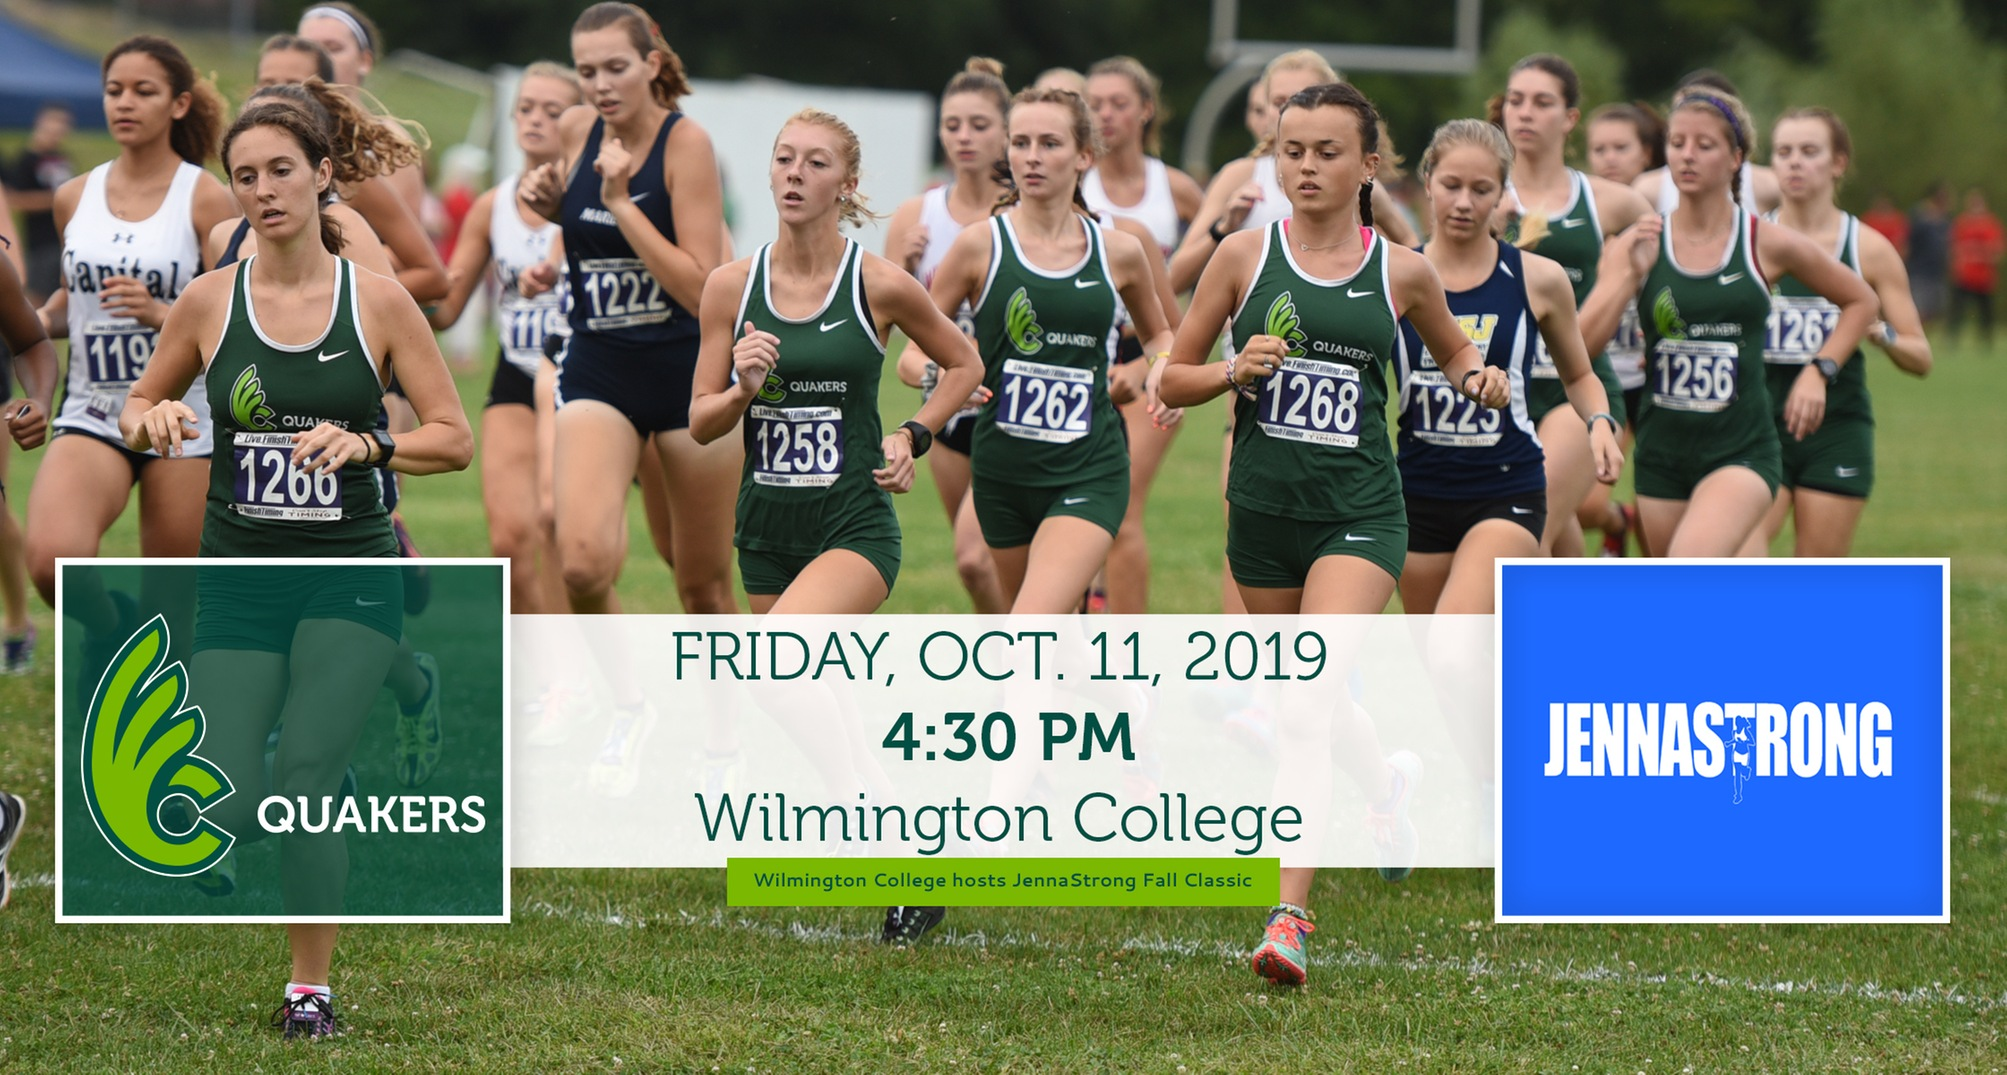 Women's Cross Country Set to Host Seventh Annual JennaStrong Fall Classic